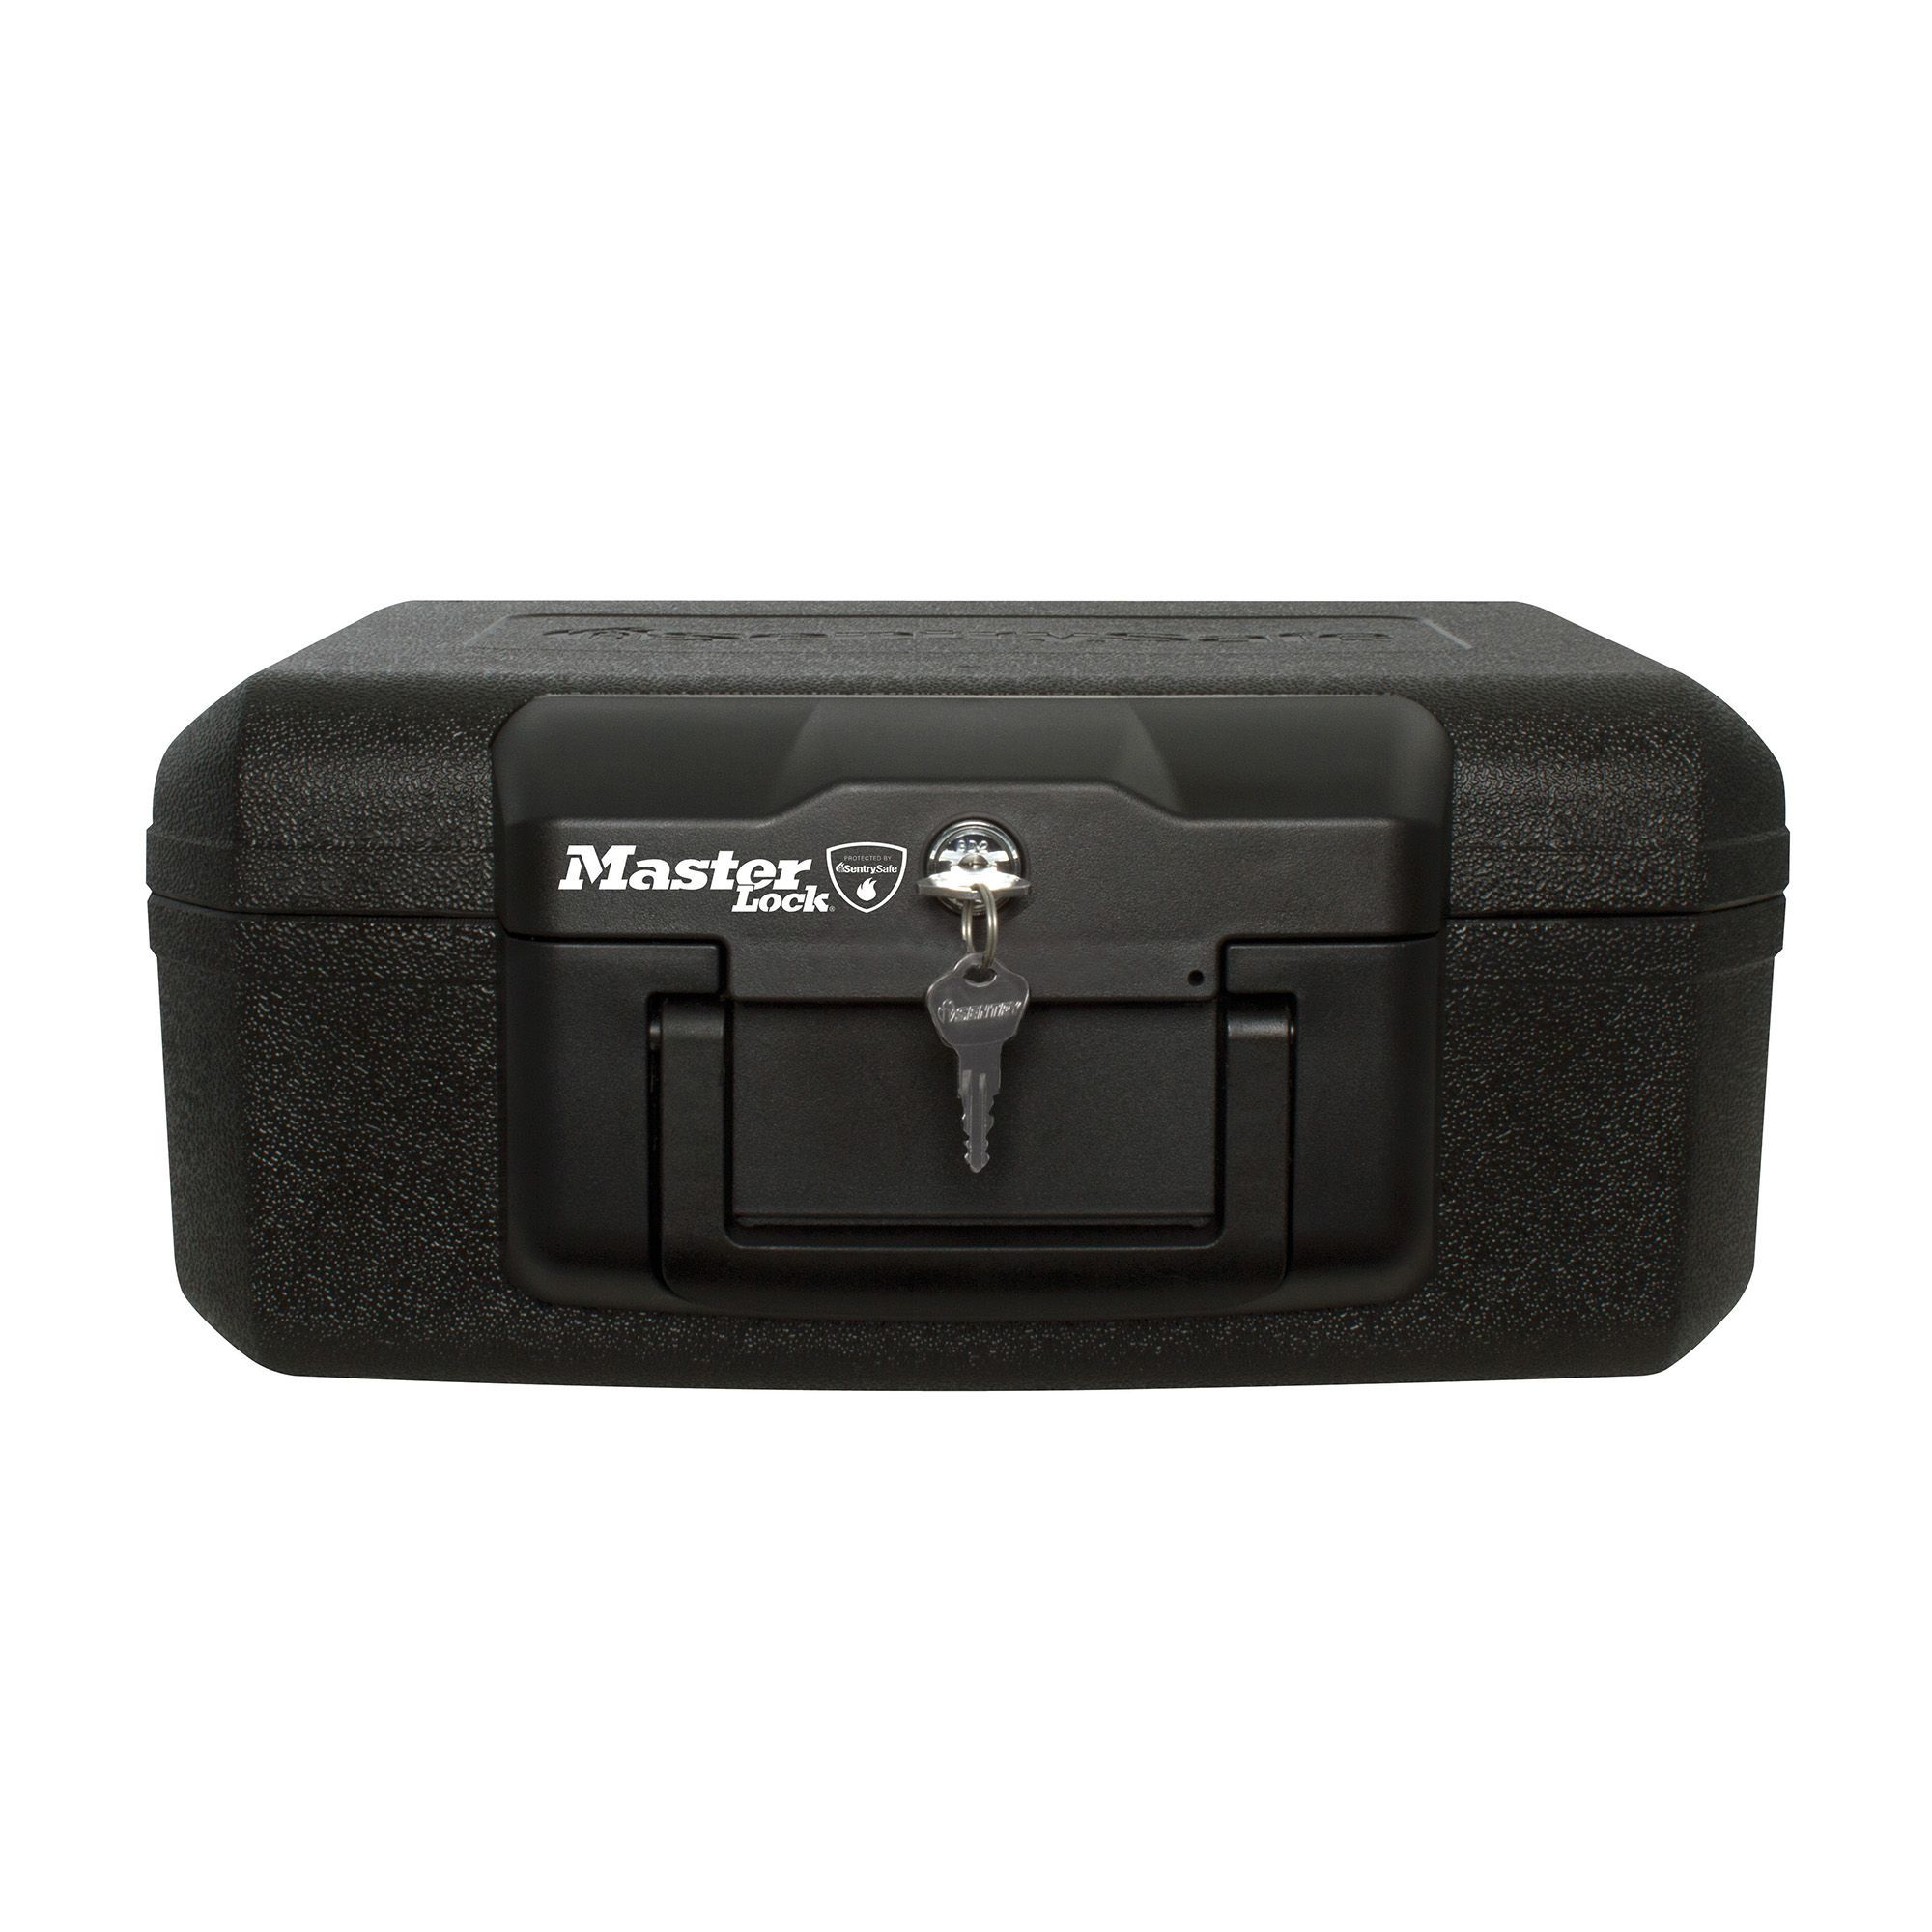 Master Lock 5.2L Cylinder Keyed chest